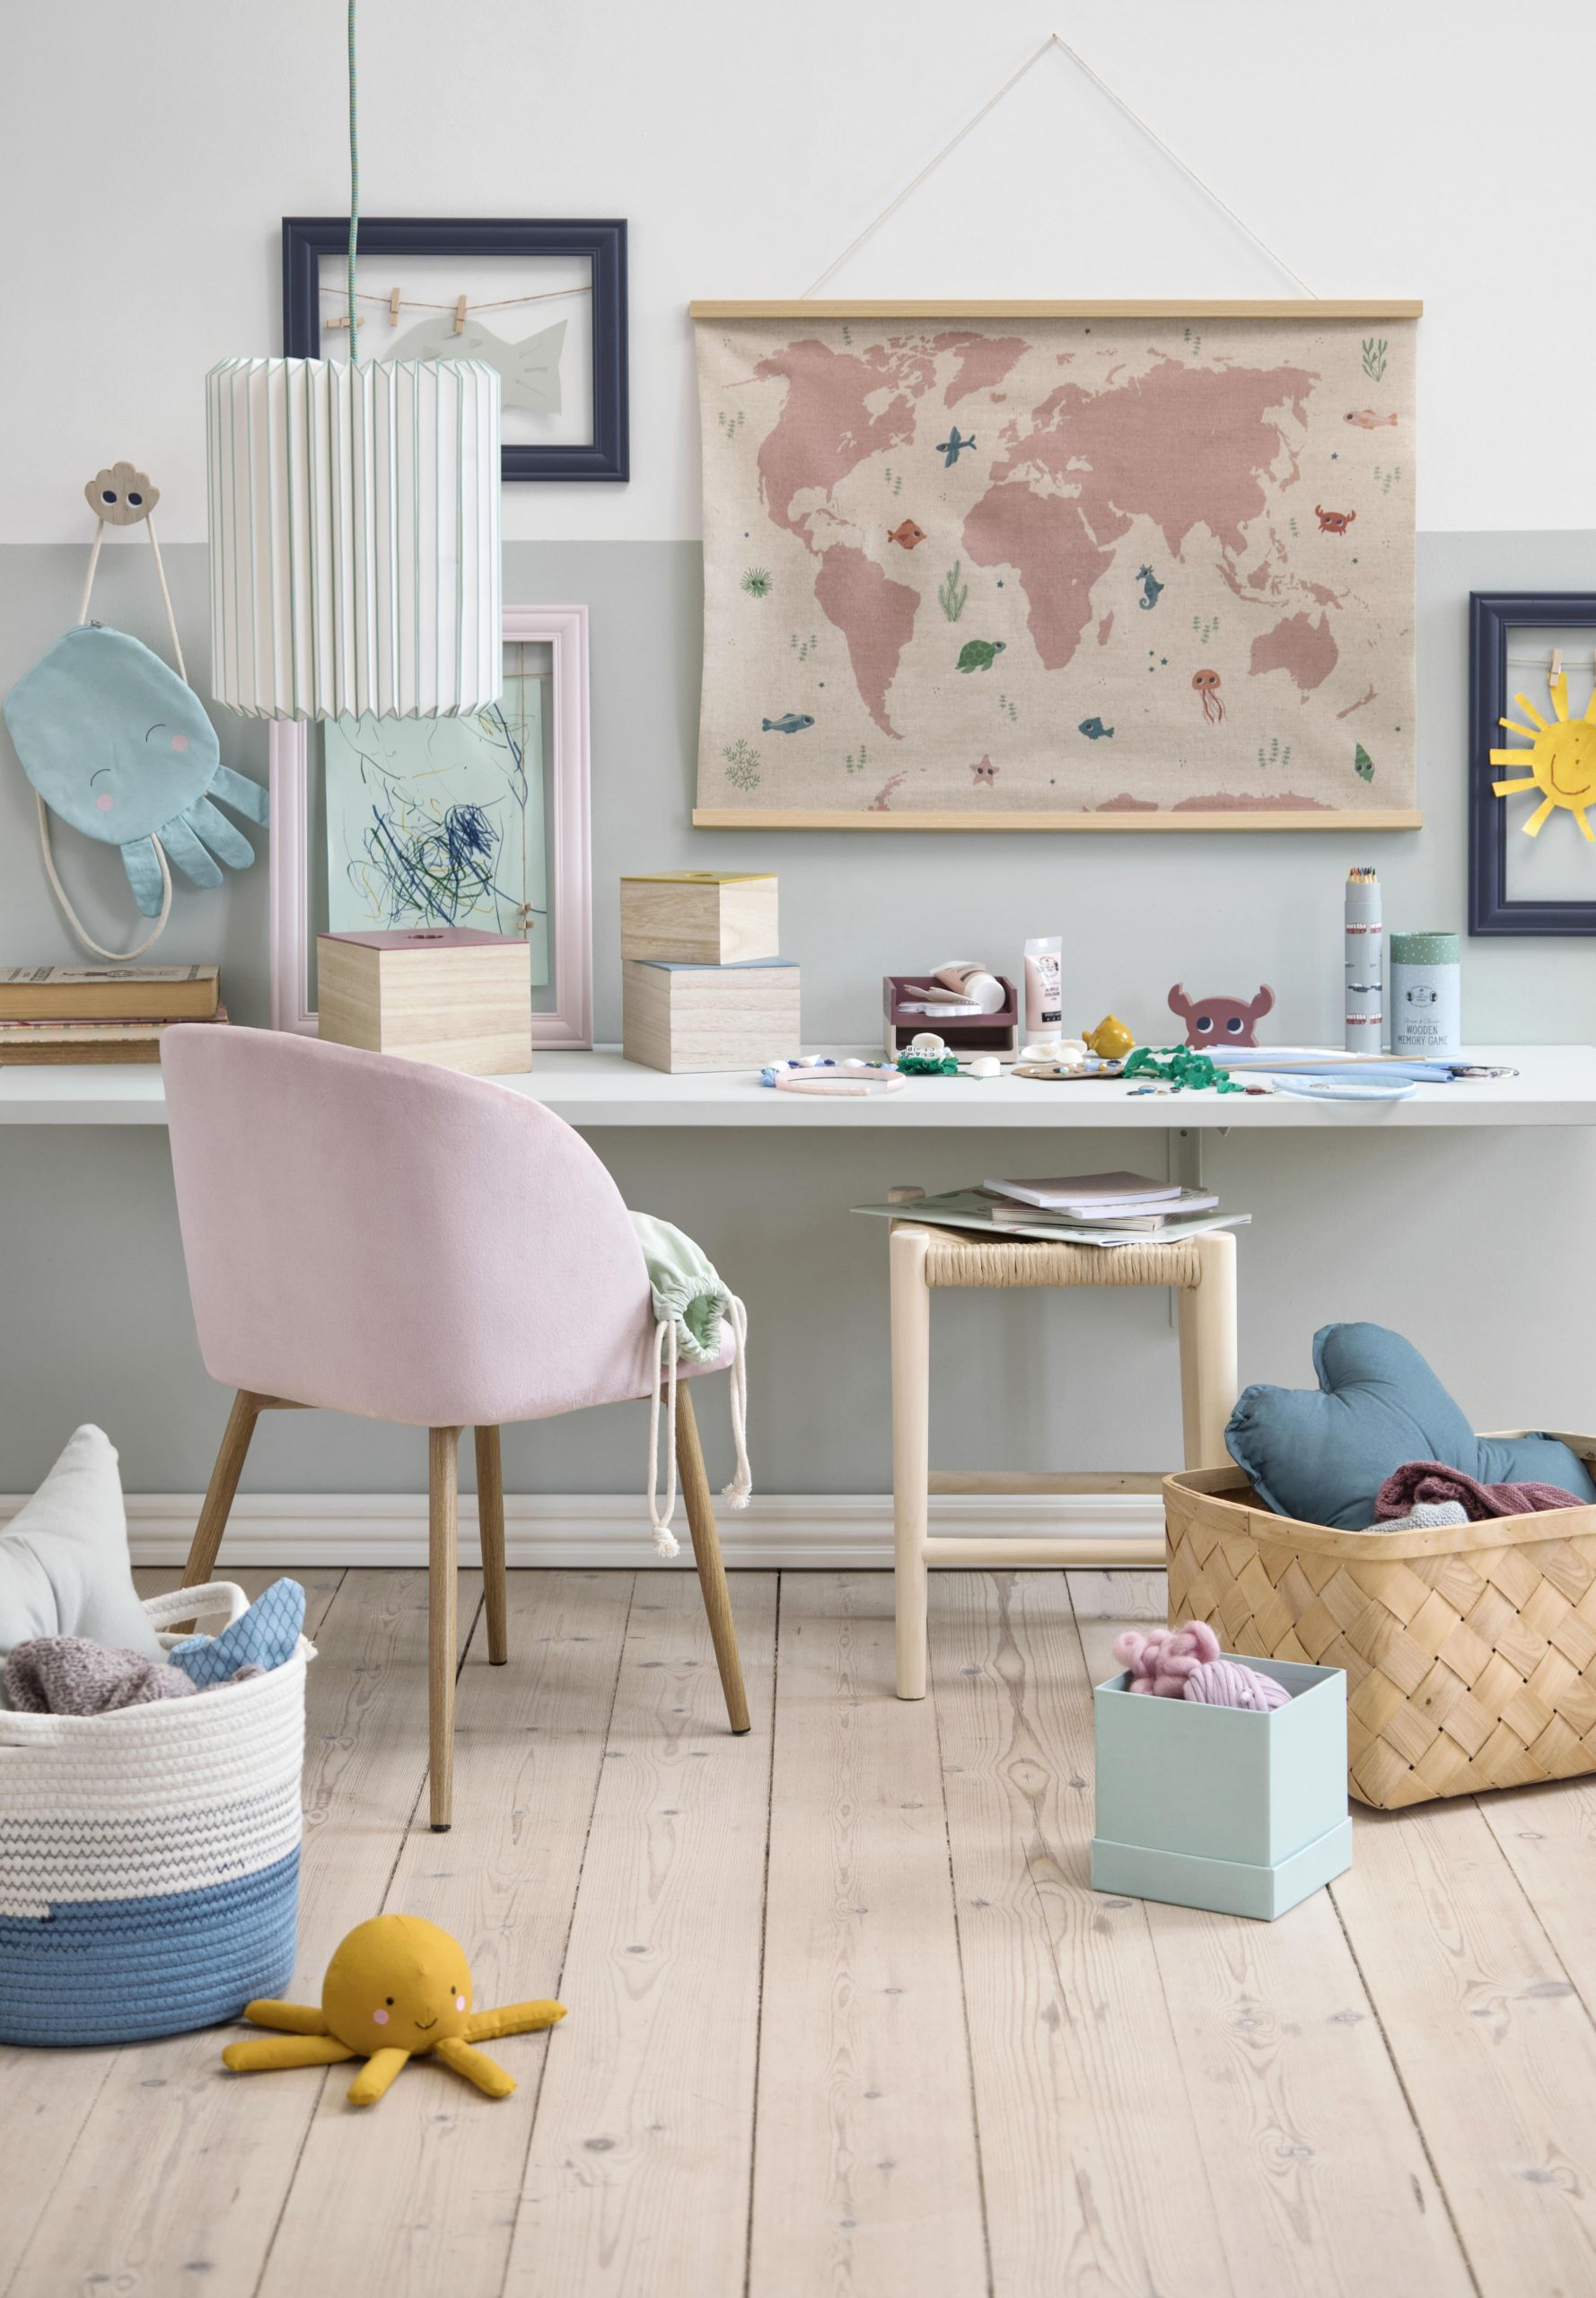 Available 23 April 2020 SostreneGrene 55 min 4153x5980 1 scaled - Sostrene Grene - Kinderinterieur en Speelgoed Collectie 2020